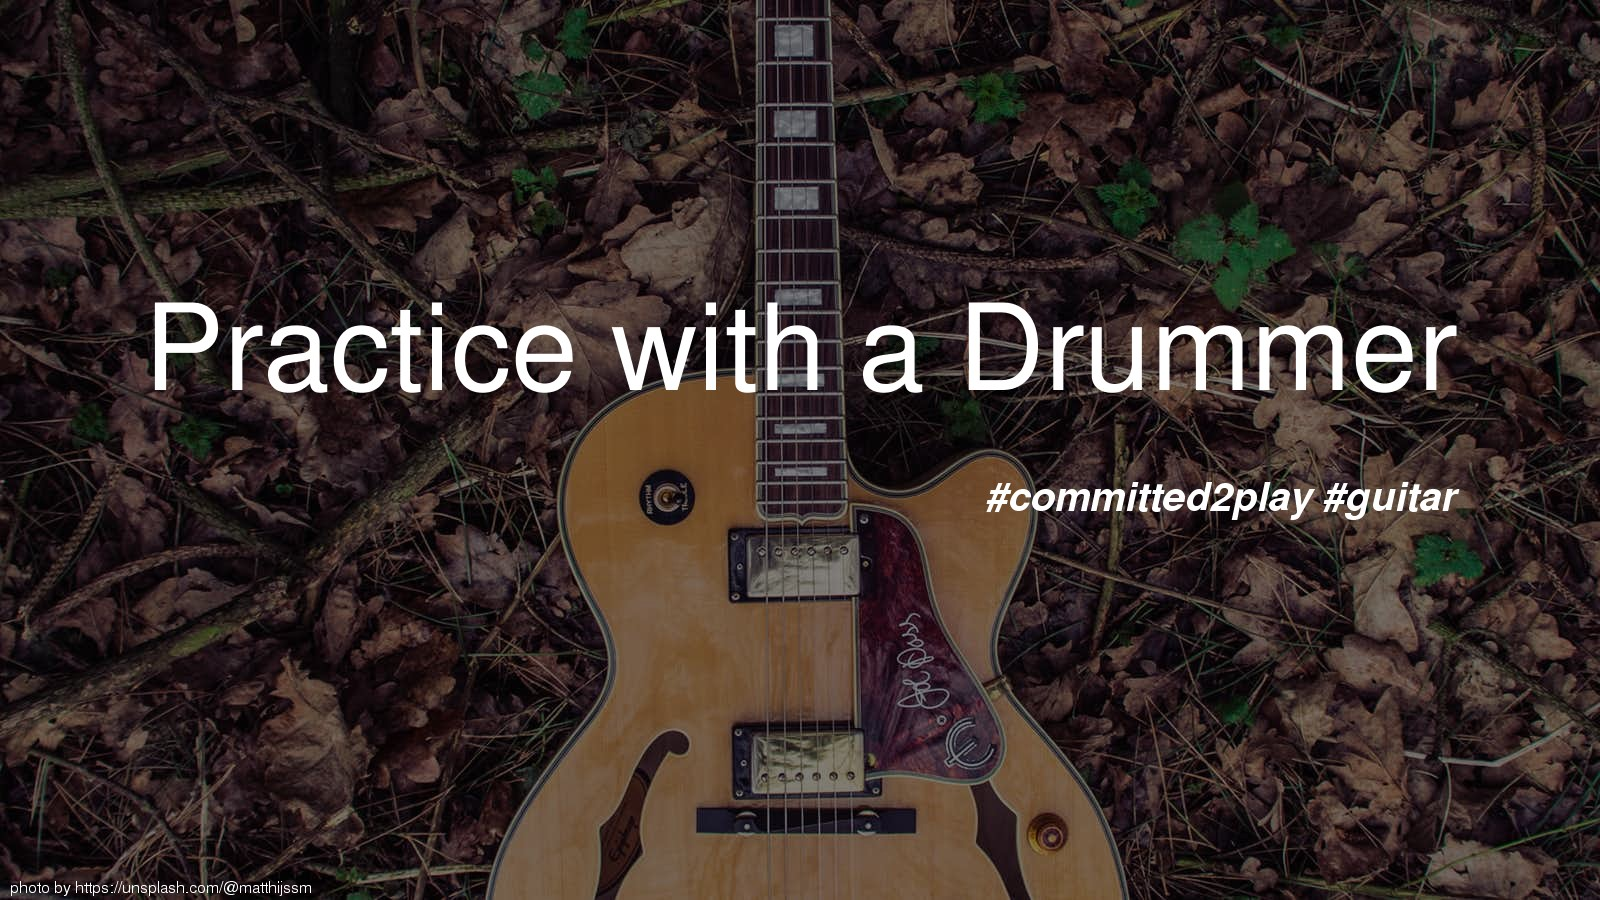 Practice with a Drummer